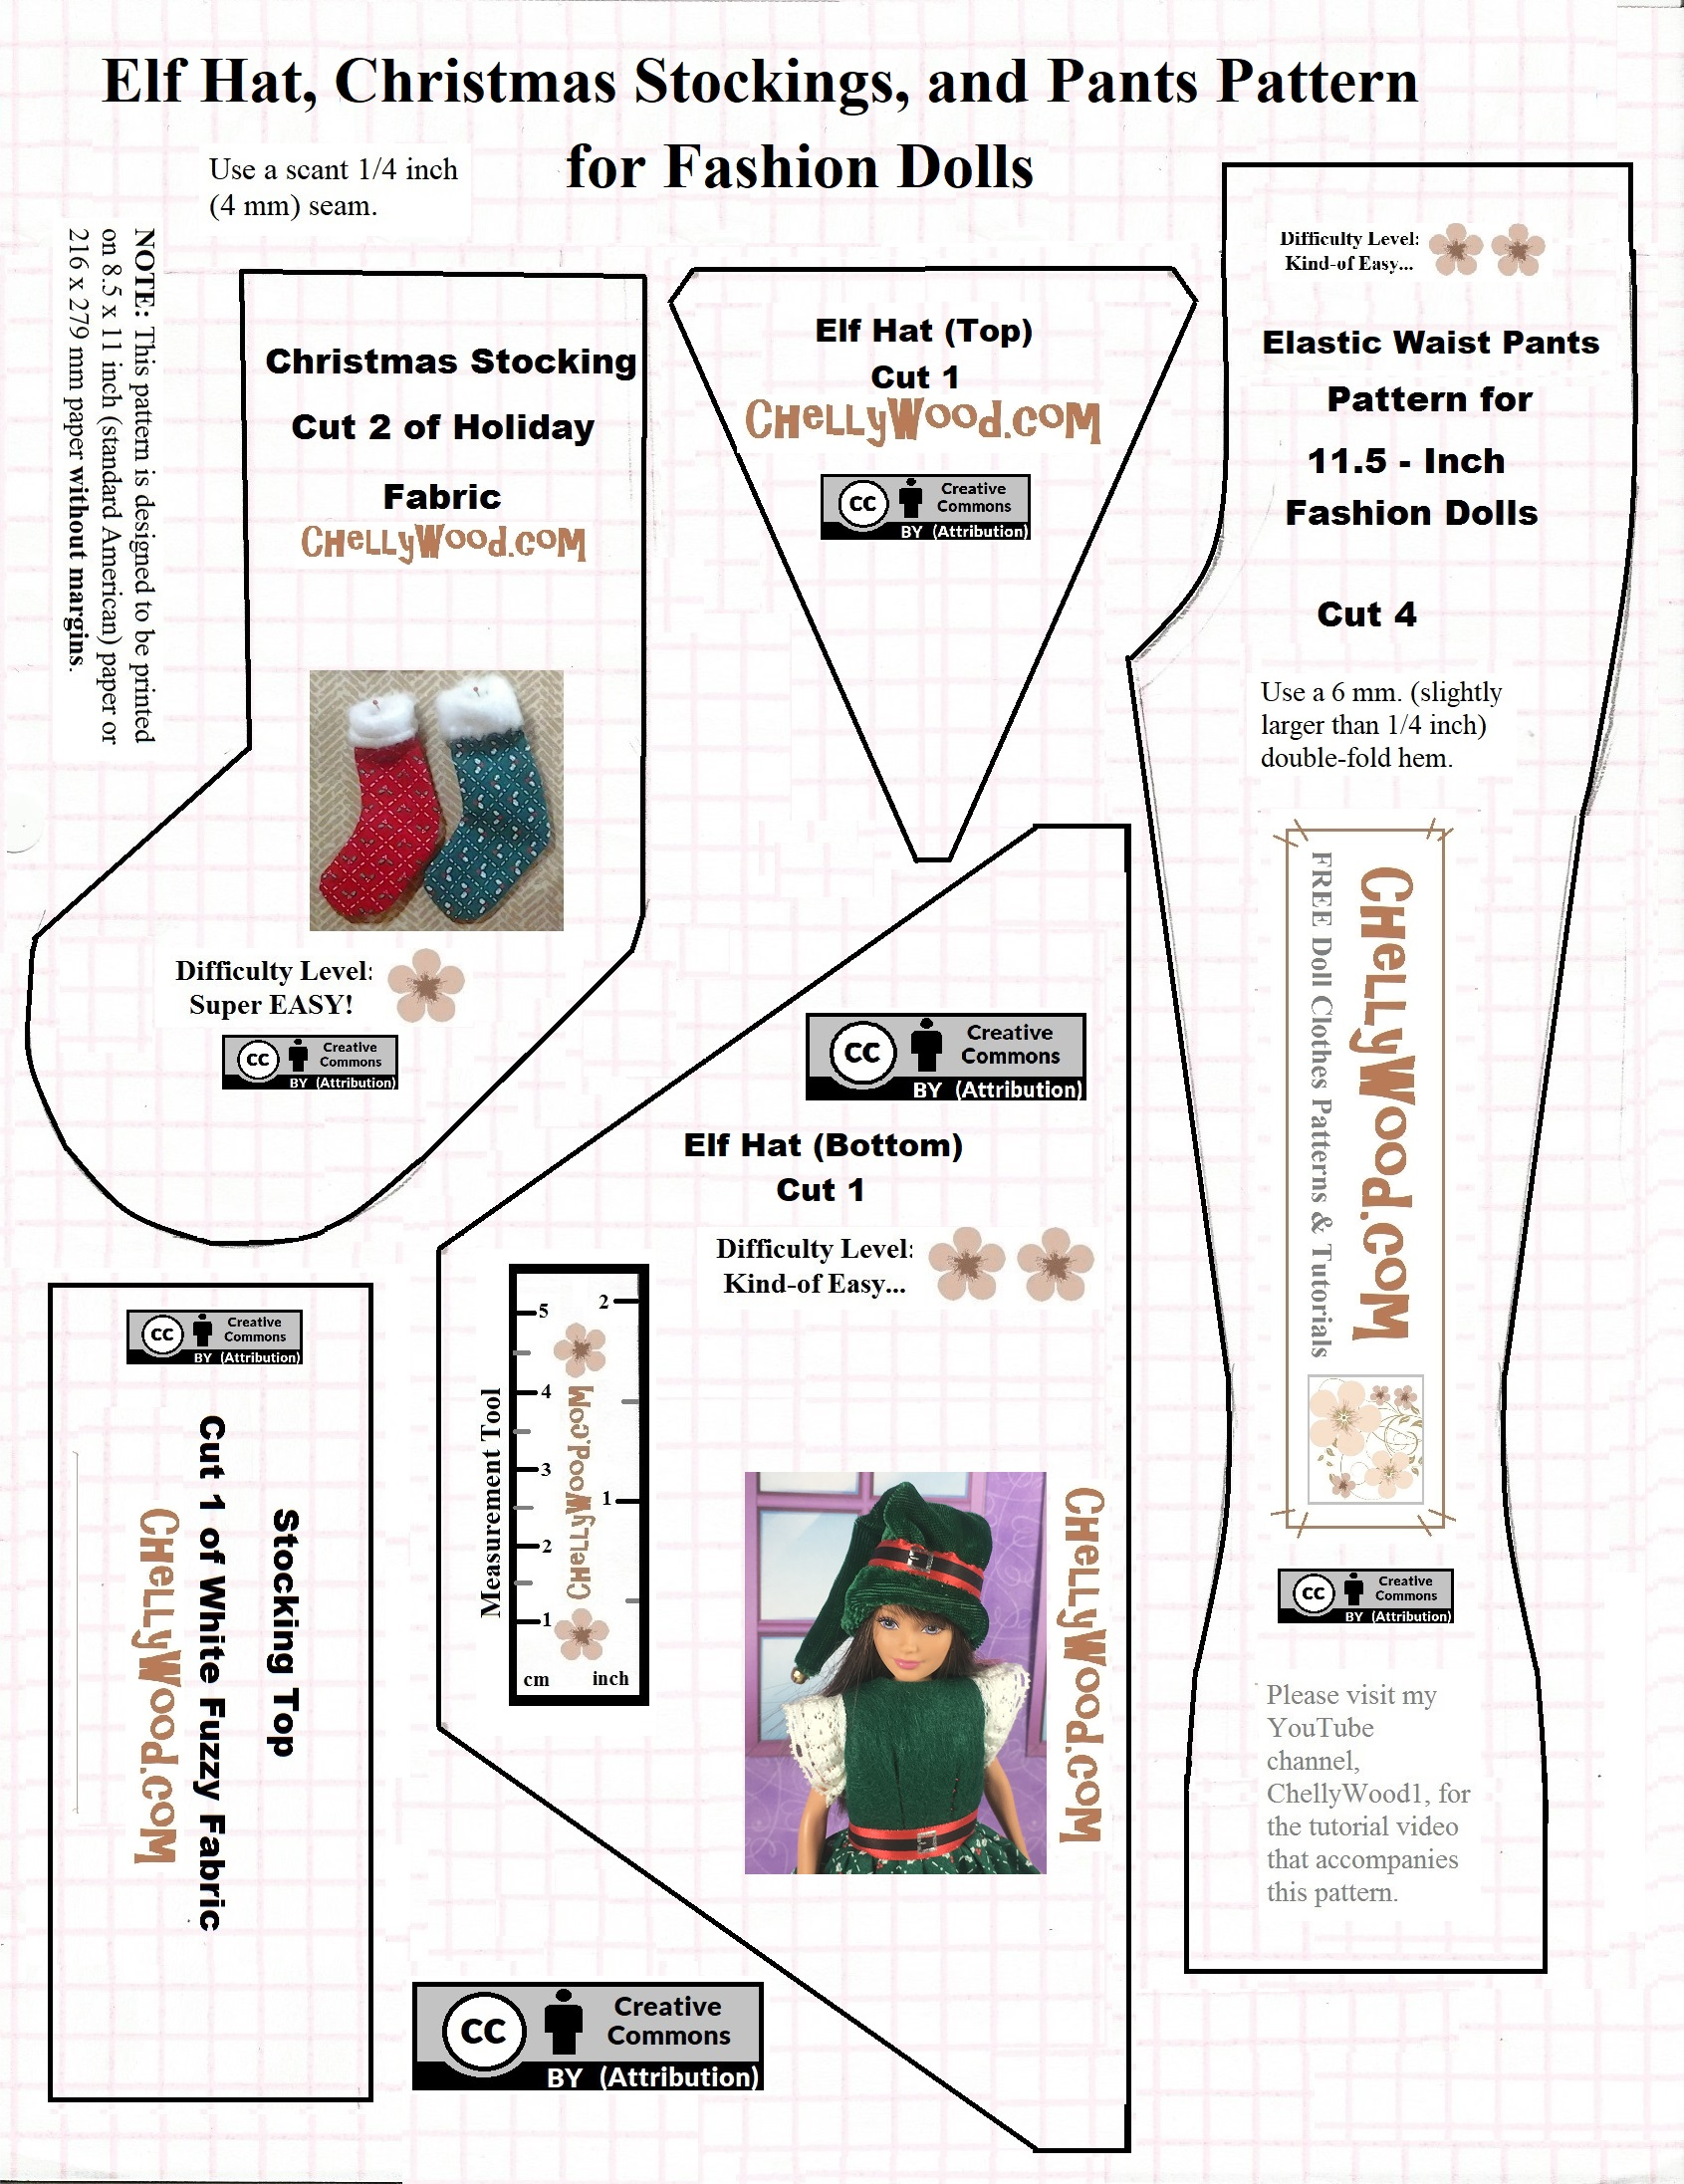 Free Holiday Sewing Patterns For Disney Princess Dolls